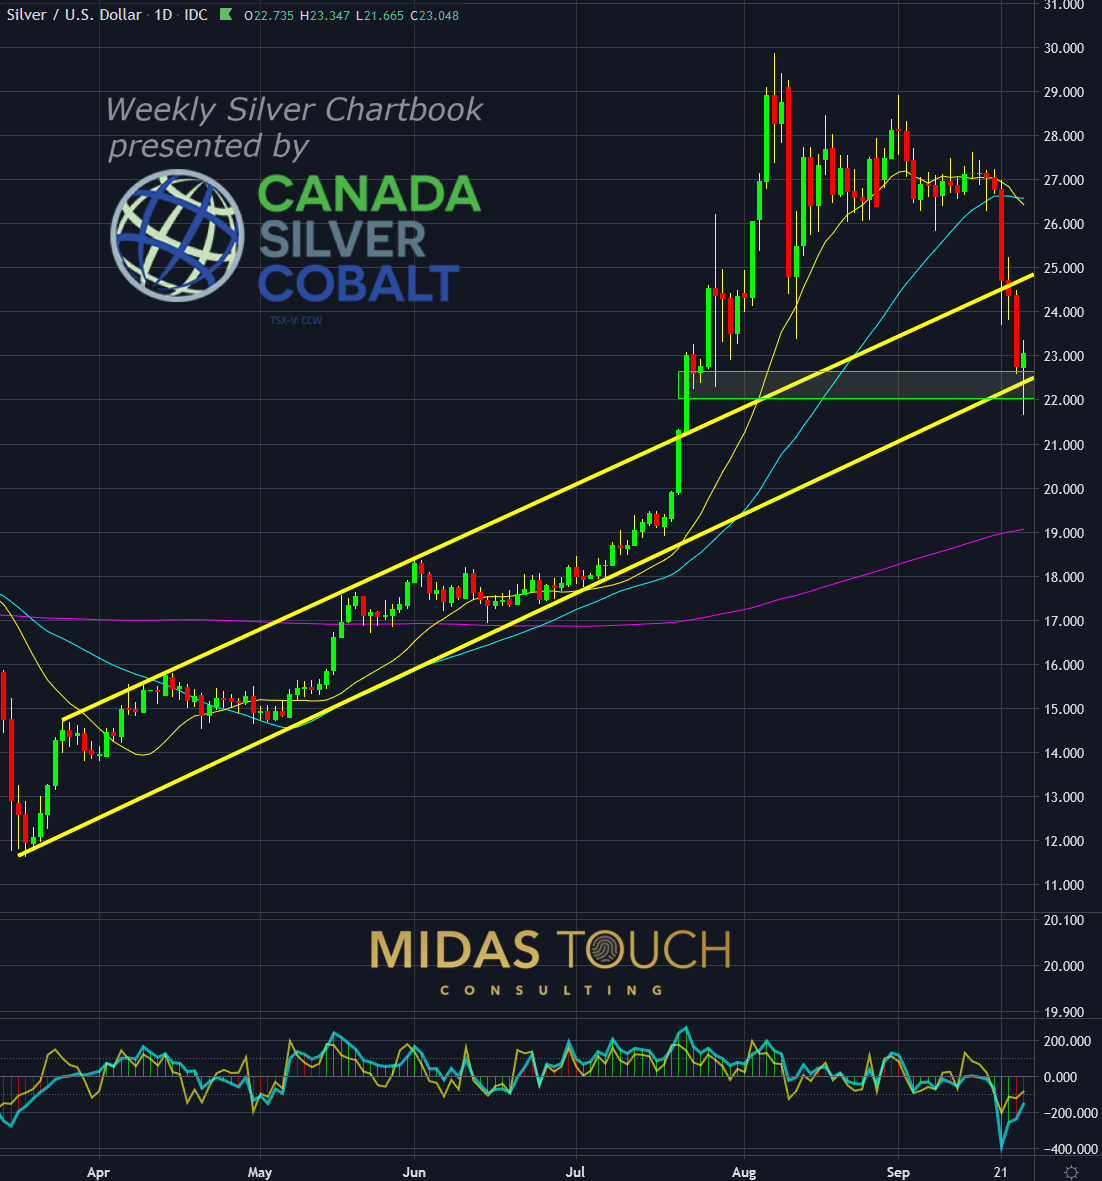 Silver in US-Dollar, daily chart as of September 24th, 2020.